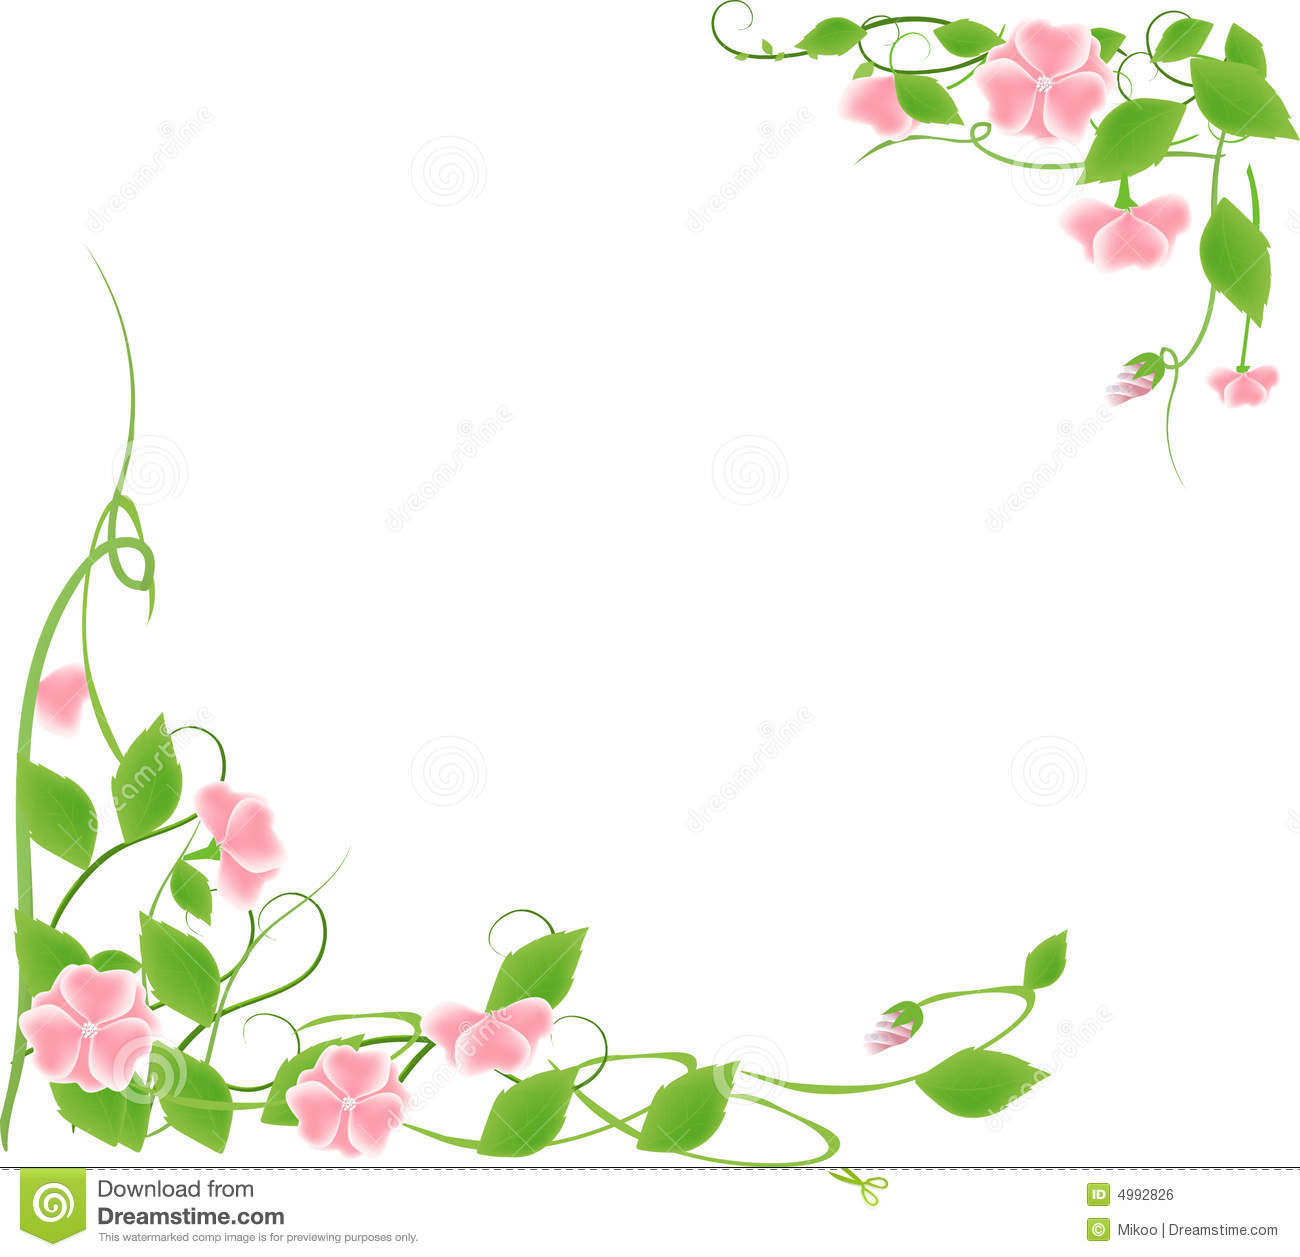 Flower frame stock vector. Illustration of floral, filigree - 4992826